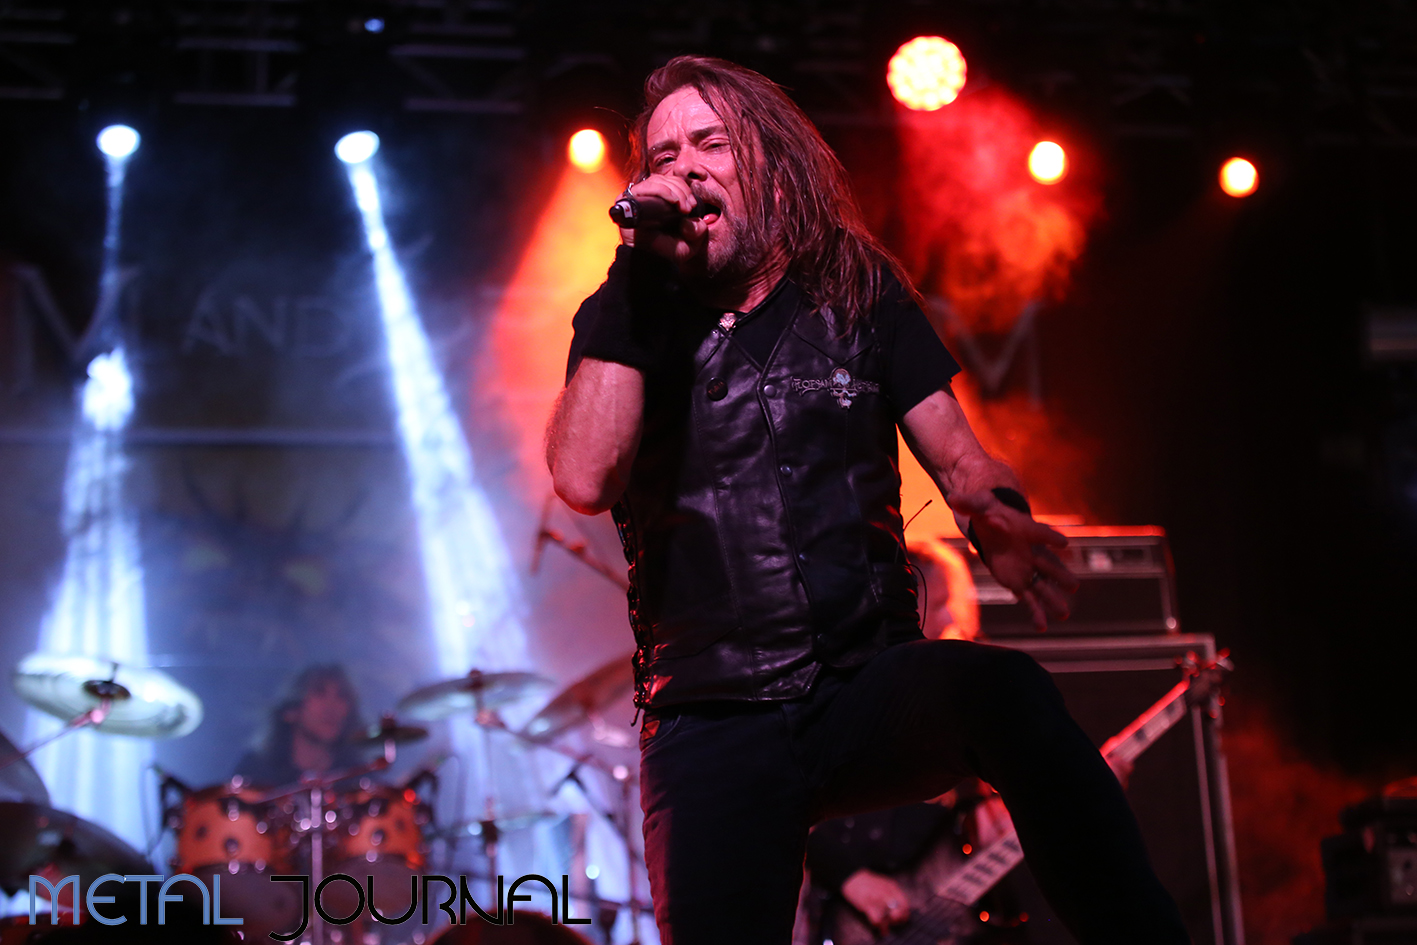 flotsam and jetsam - leyendas del rock 2019 metal journal pic 1